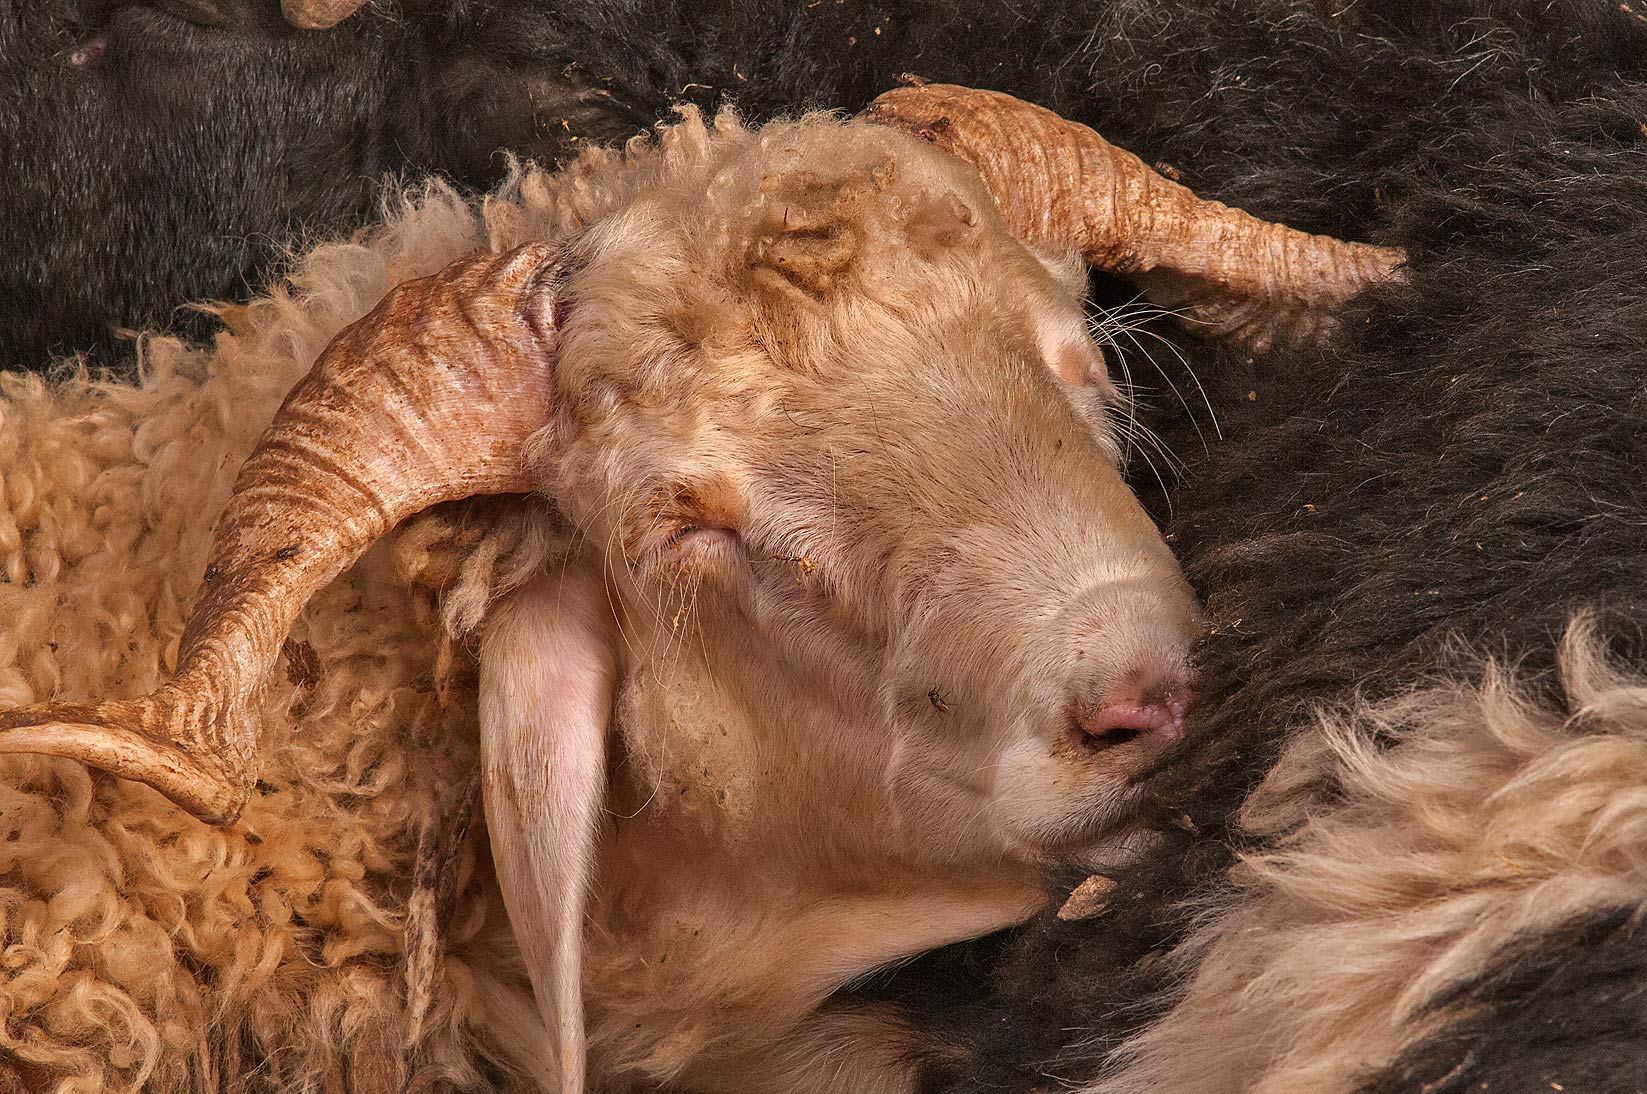 Head of a sleeping sheep in livestock market, Abu Hamour area. Doha, Qatar